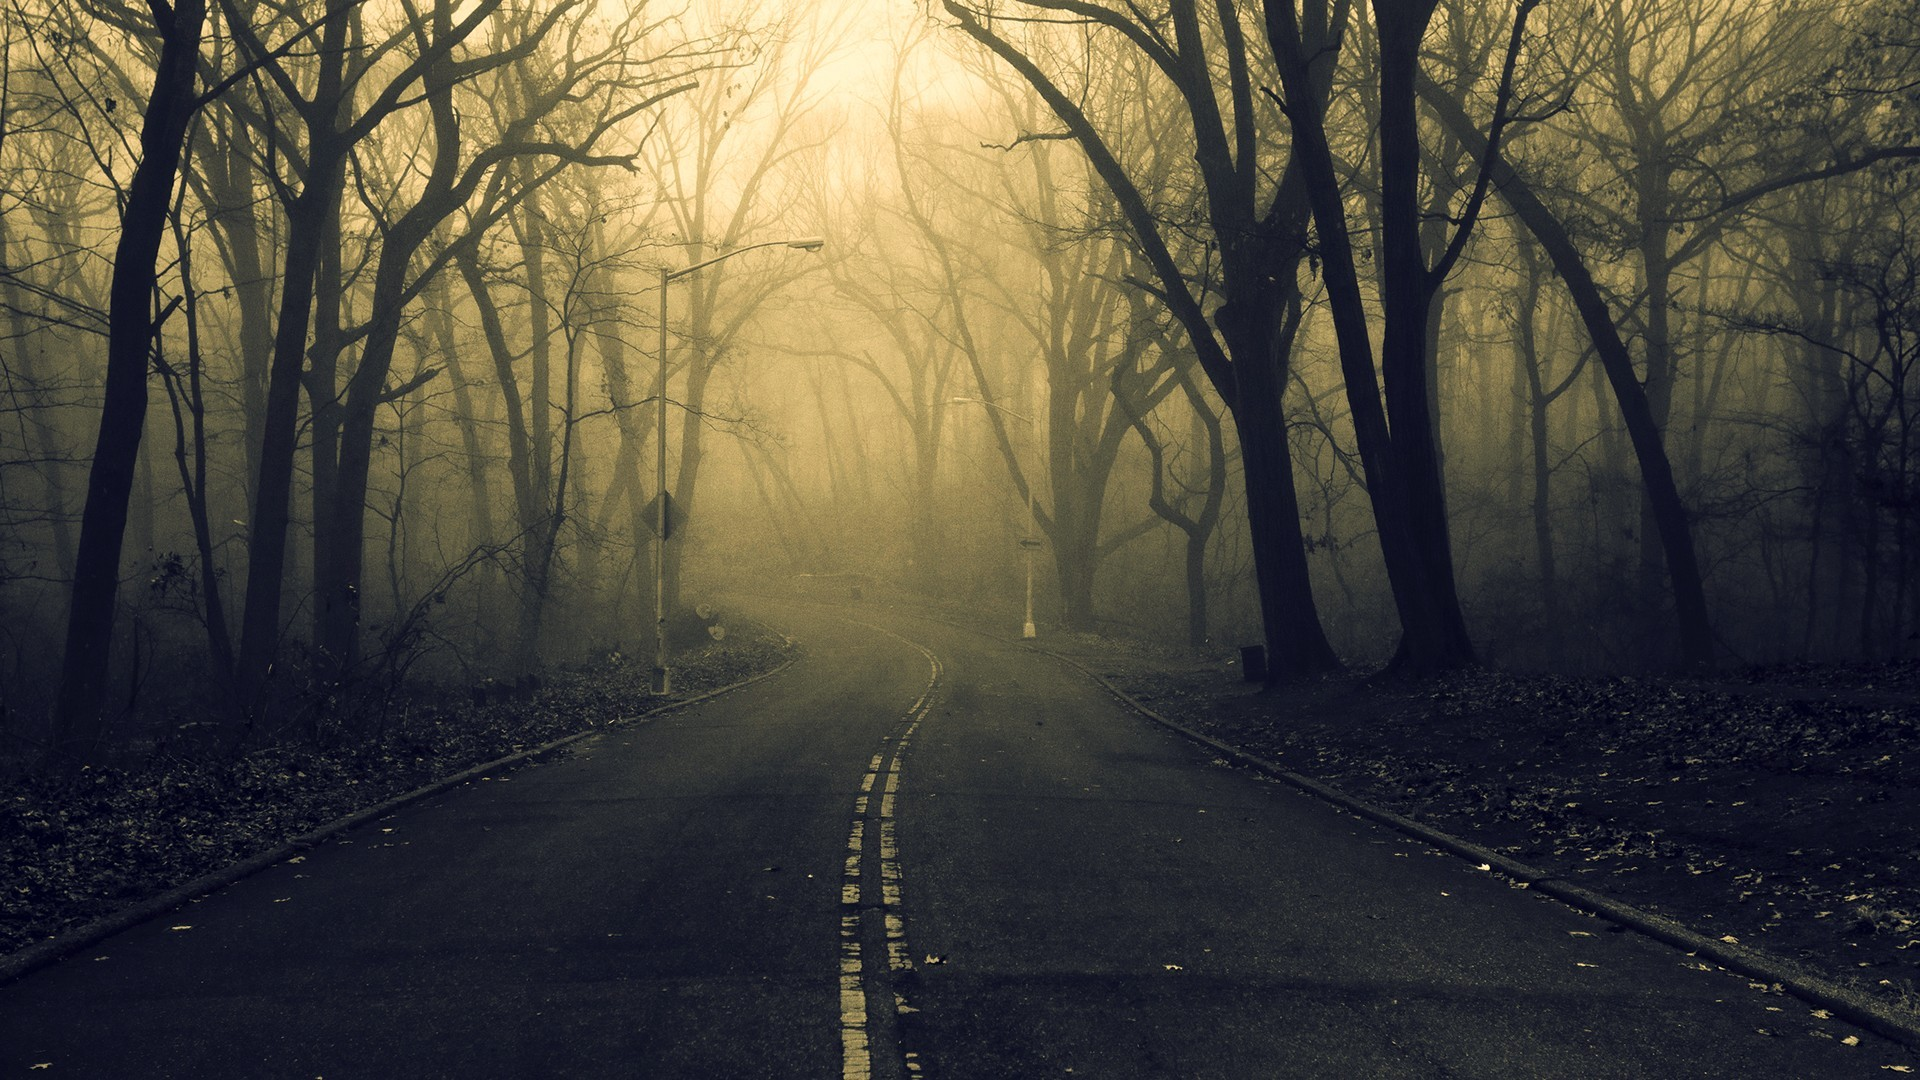 General 1920x1080 road forest spooky